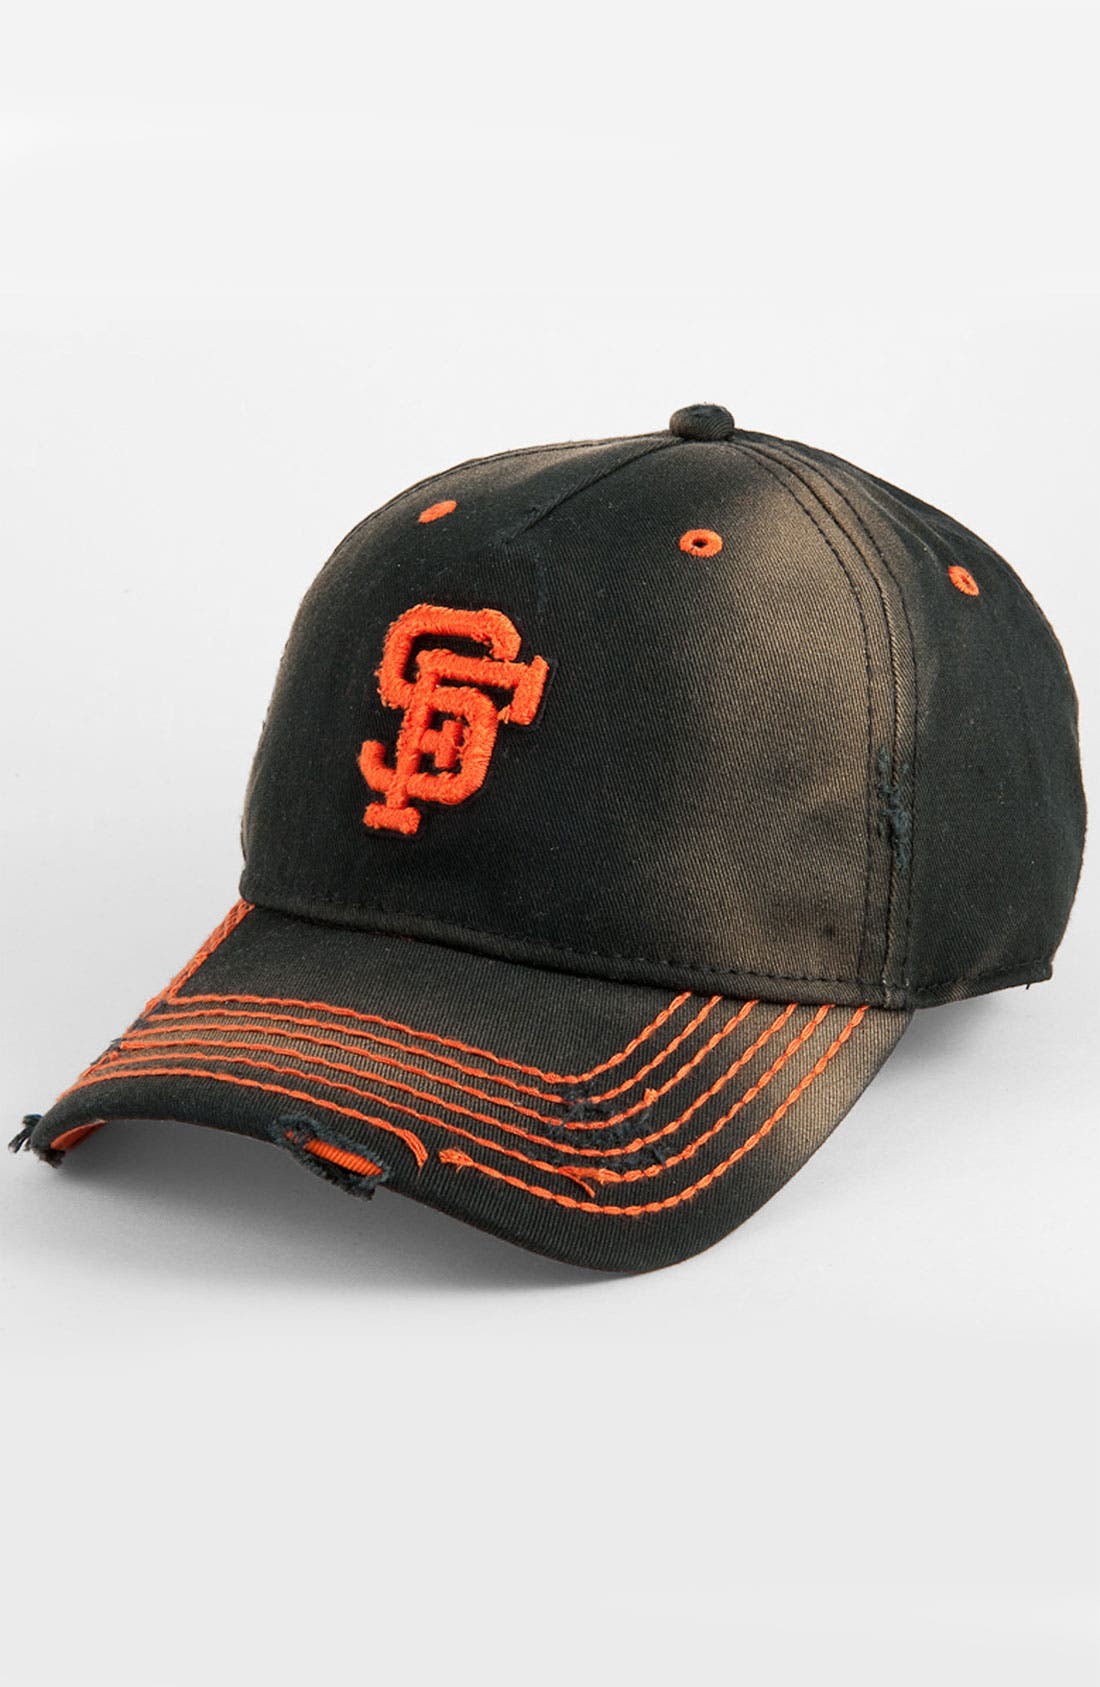 Alternate Image 1 Selected - American Needle 'Giants' Baseball Cap